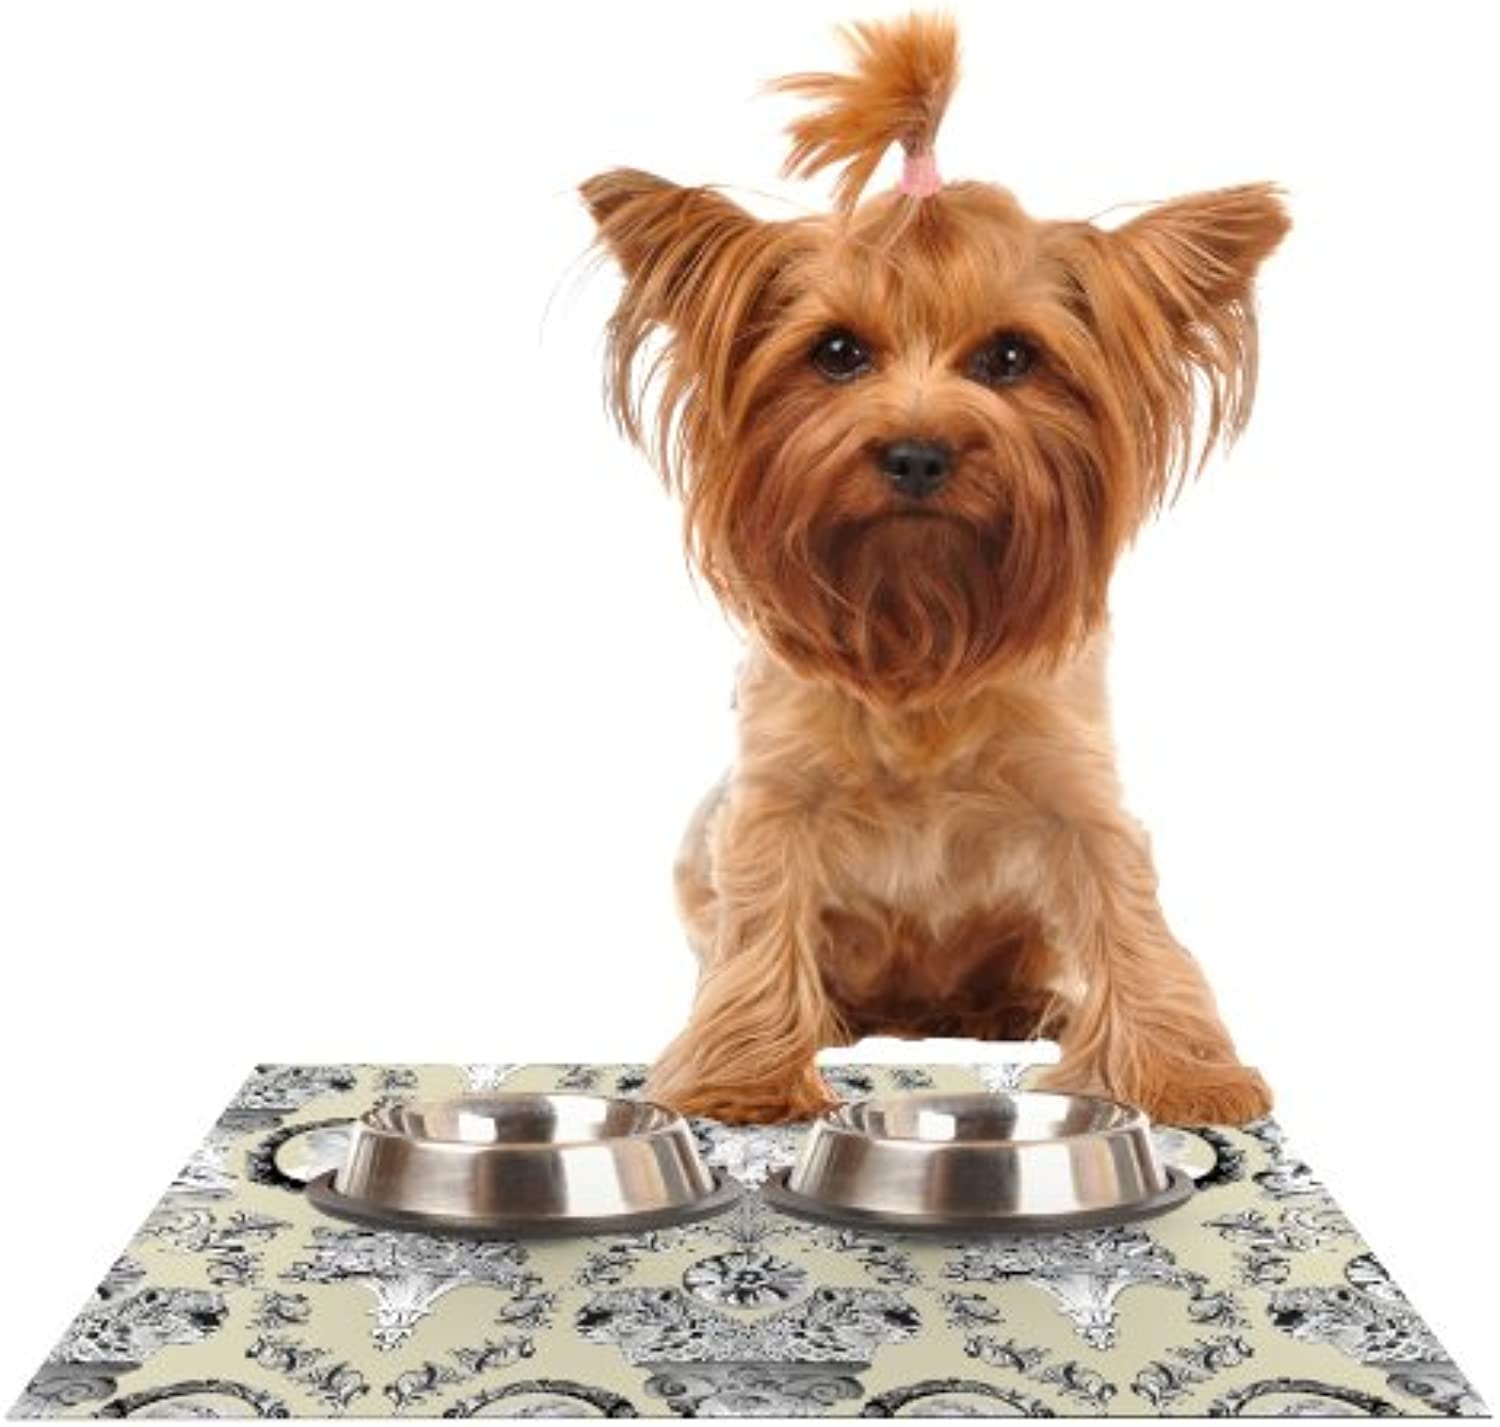 Kess InHouse DLKG Design Imperial Palace  Feeding Mat for Pet Bowl, 18 by 13Inch